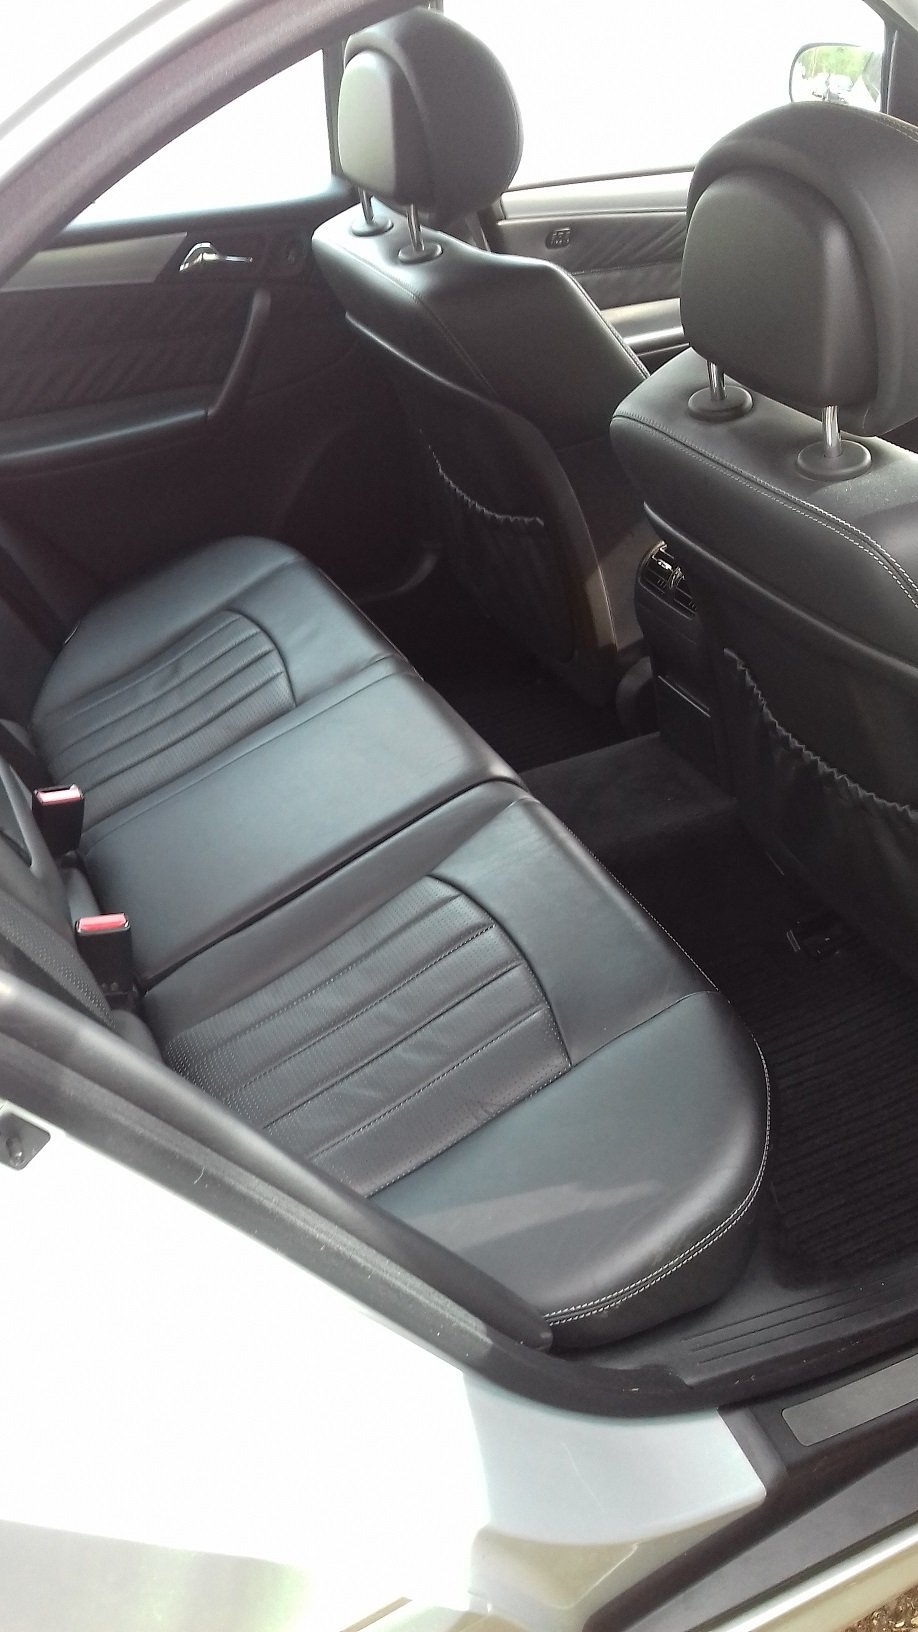 2006 Mercedes-Benz C55 AMG 4dr Full Spec For Sale (picture 5 of 5)